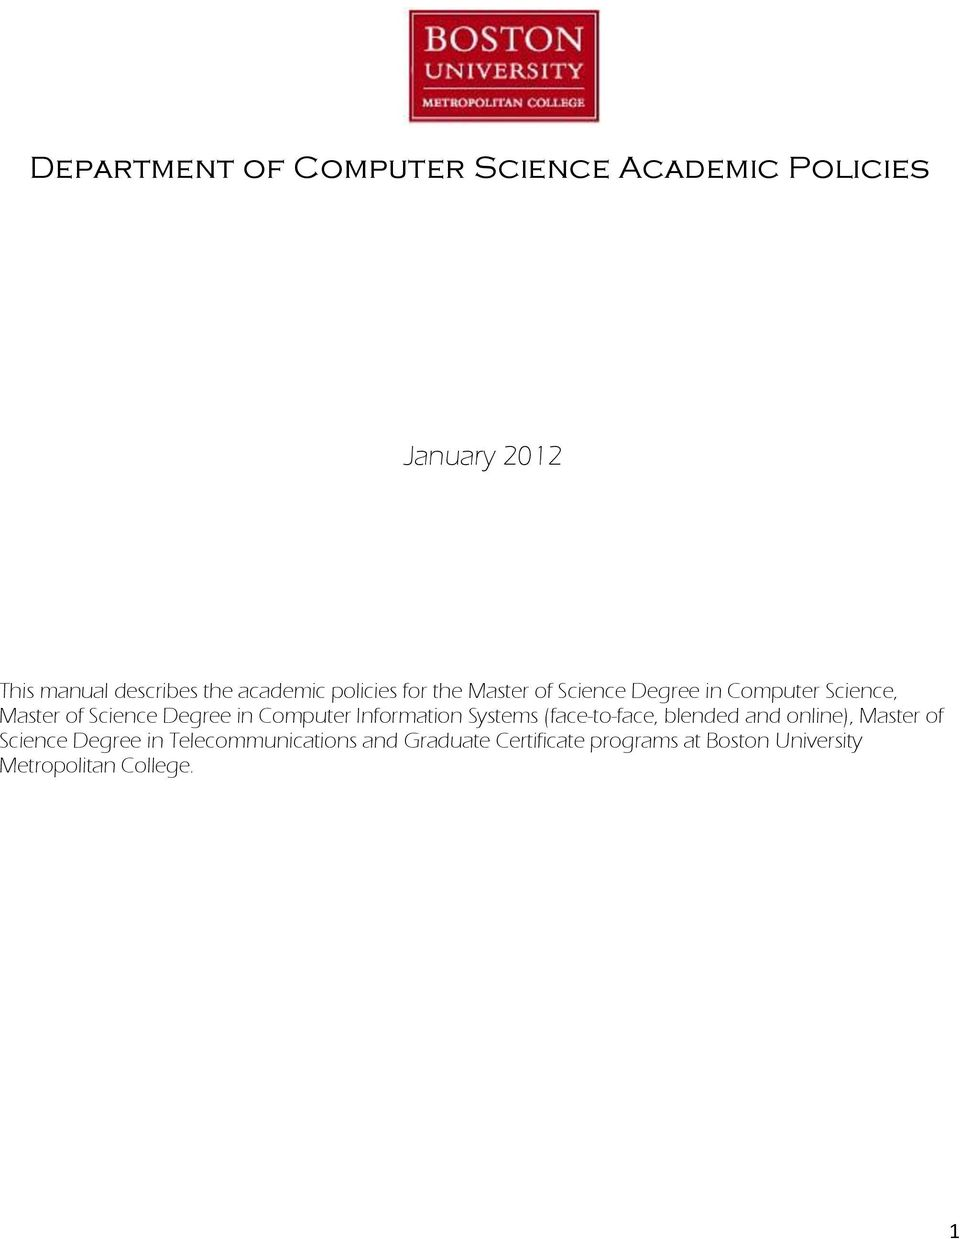 Department of Computer Science Academic Policies - PDF